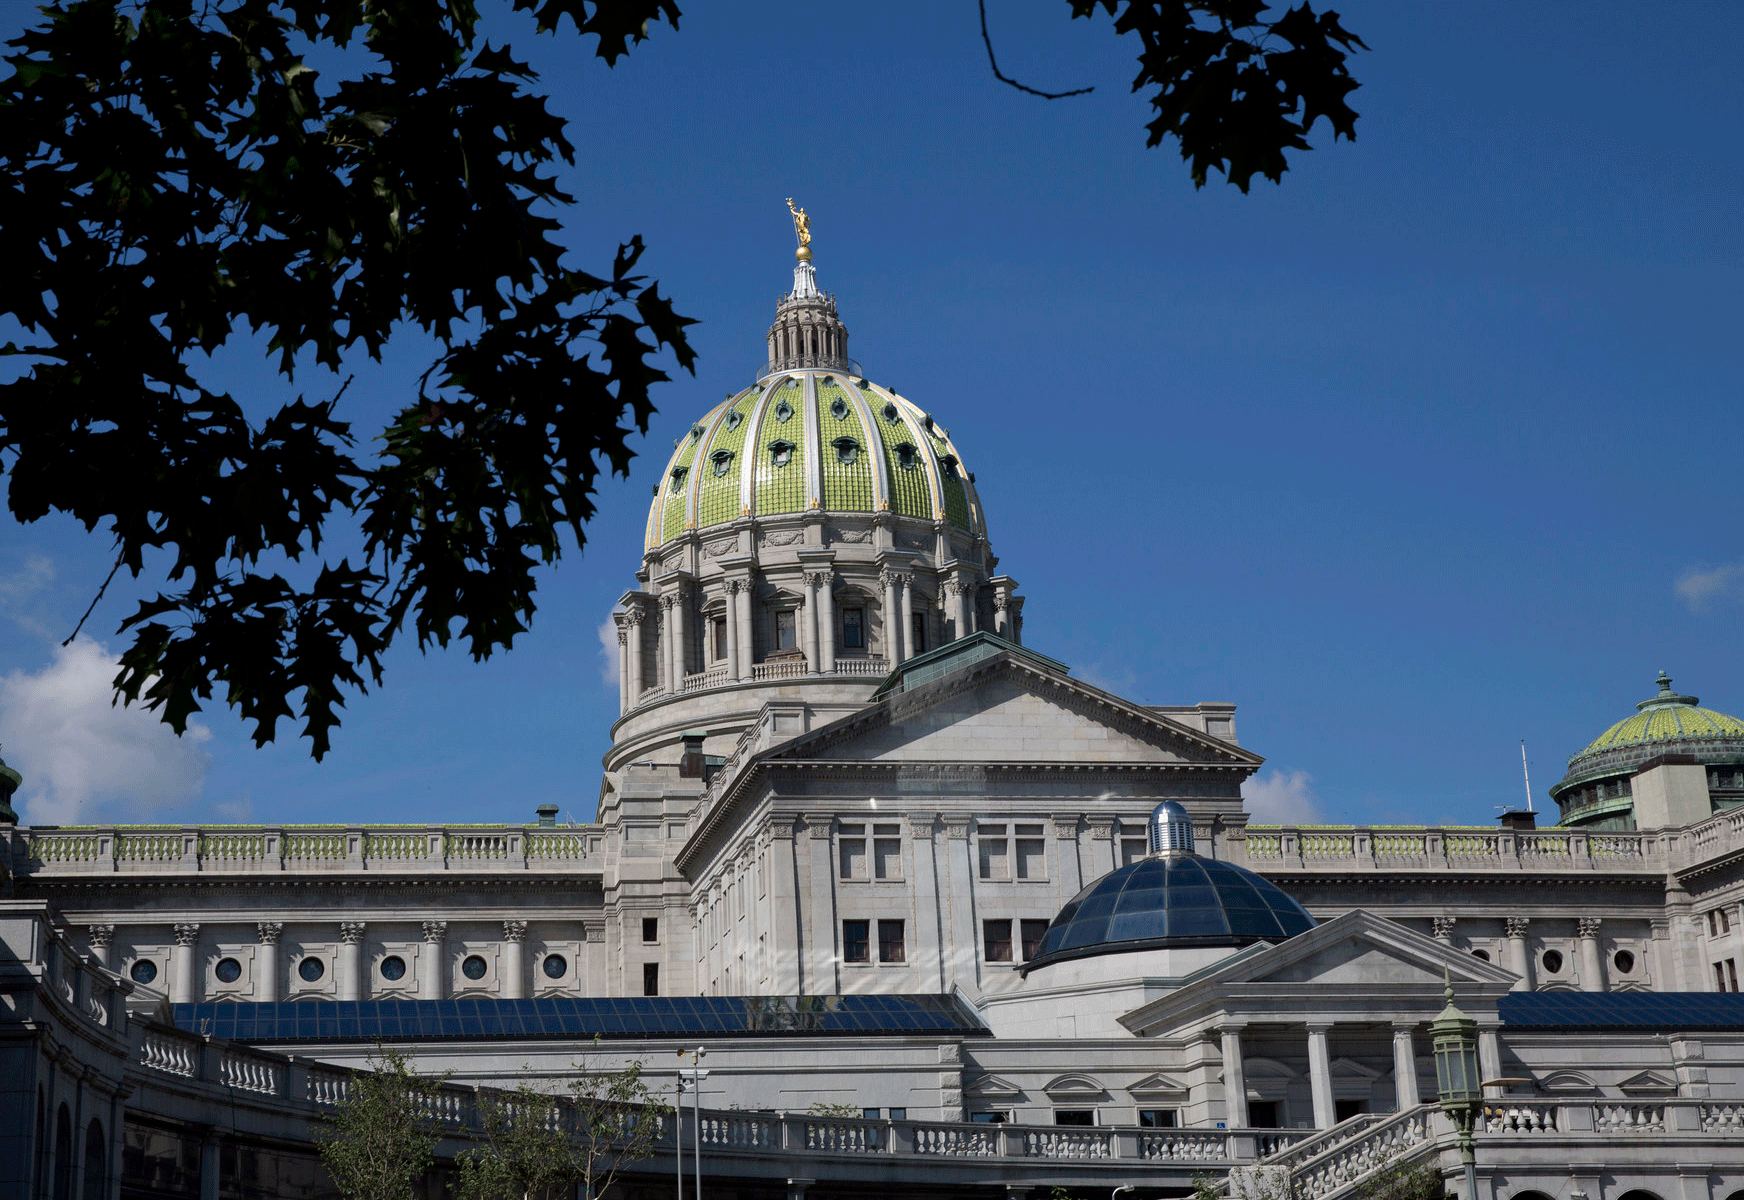 Pennsylvania Capitol Building behind some leaves